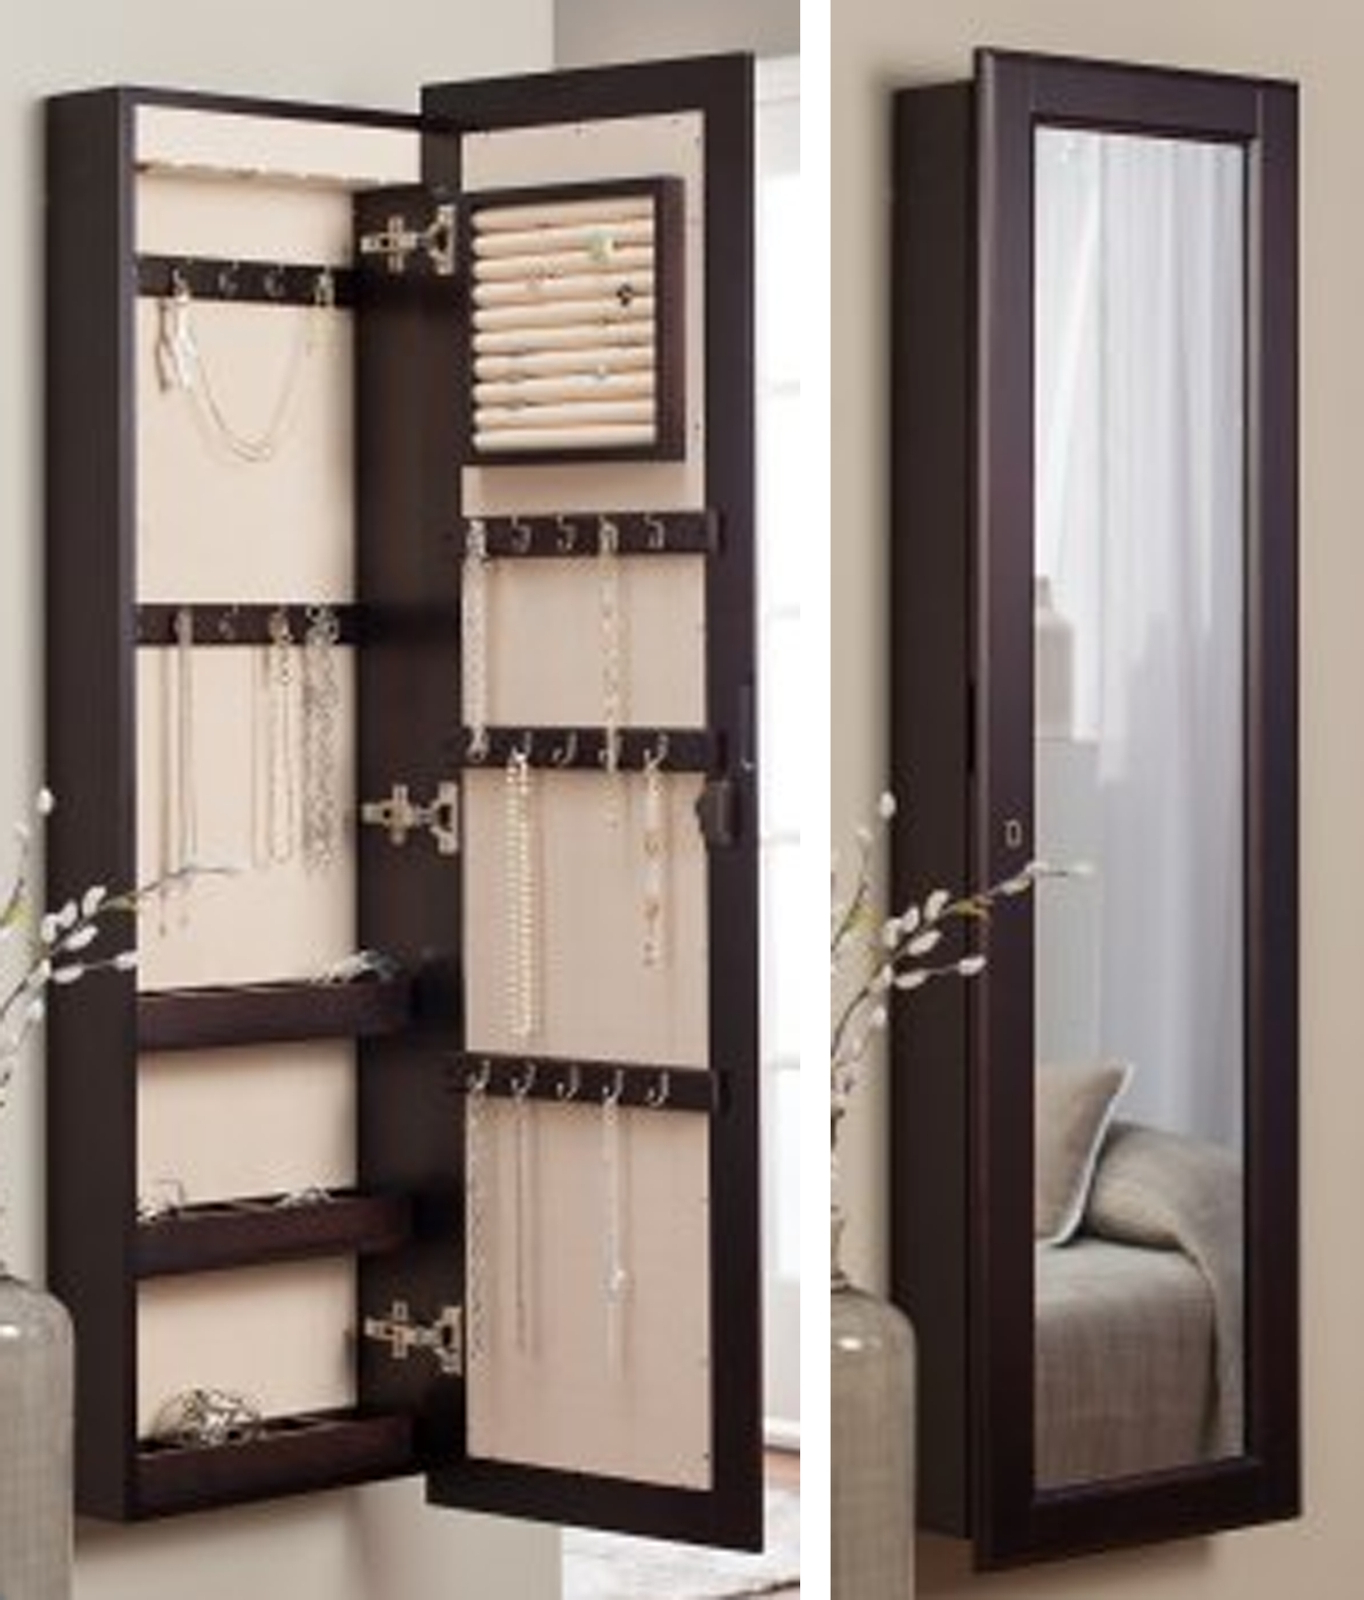 Wall Hanging Mirror Jewelry Box • Bathroom Mirrors And Wall Mirrors Inside Fashionable Jewelry Wall Mirrors (View 17 of 20)